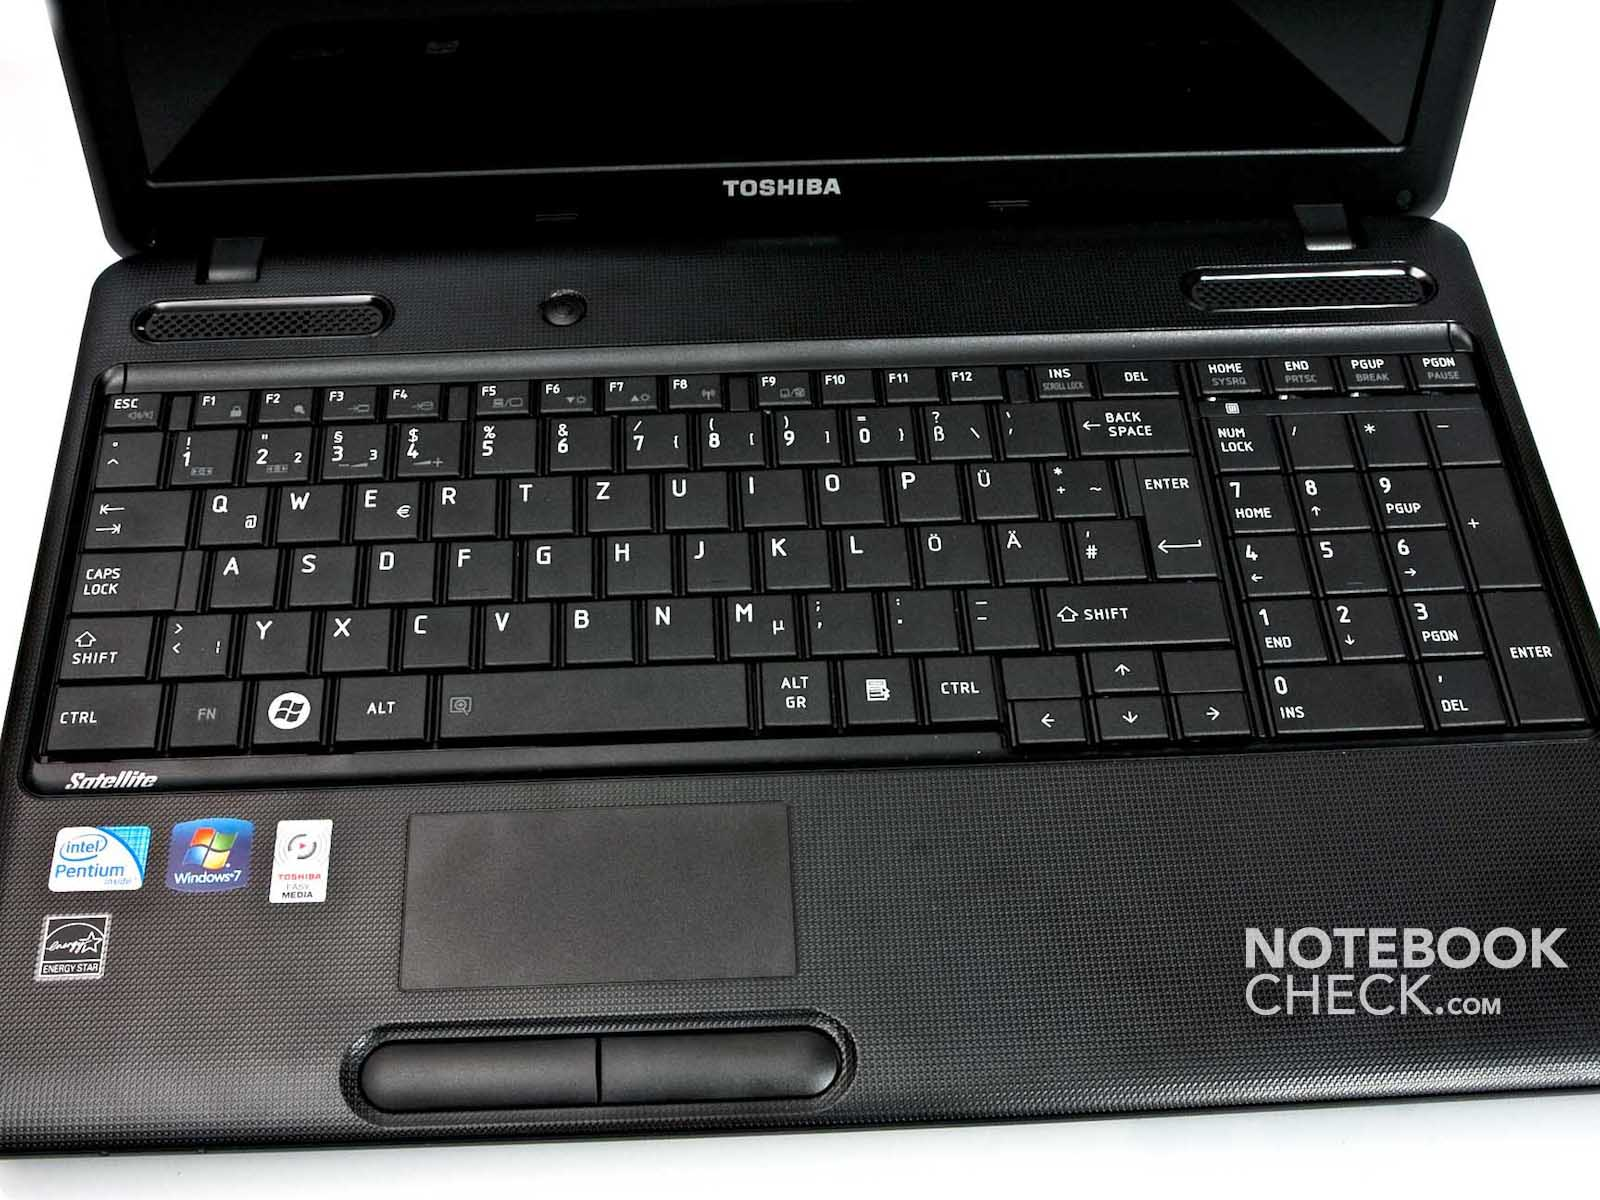 TOSHIBA SATELLITE C660 SOUND DESCARGAR DRIVER